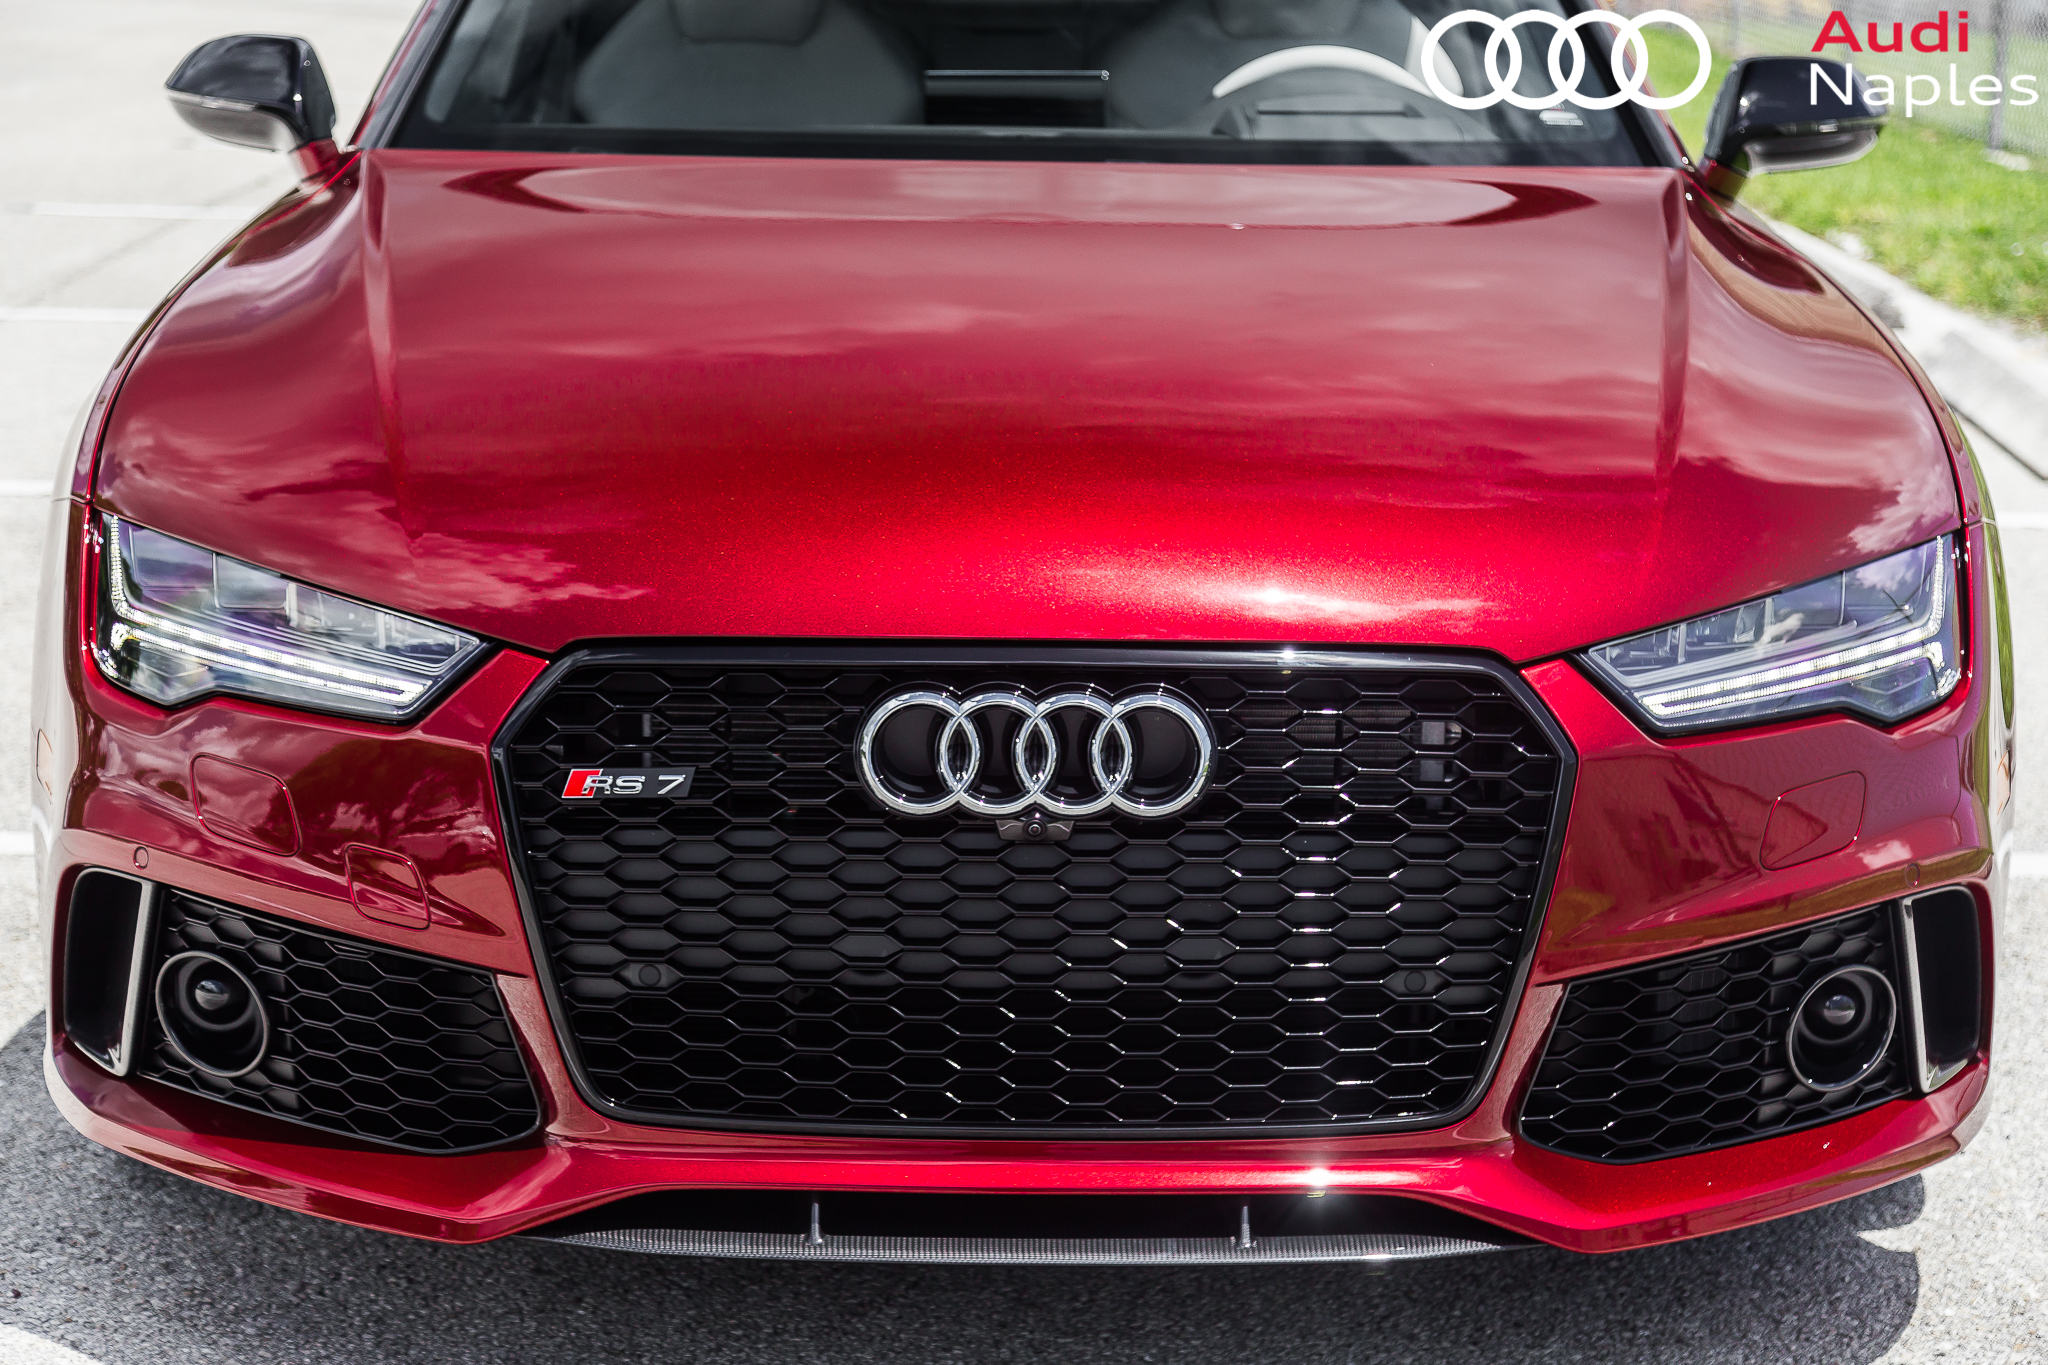 Audi Exclusive 2017 Rs7 In Rubino Red Advanced